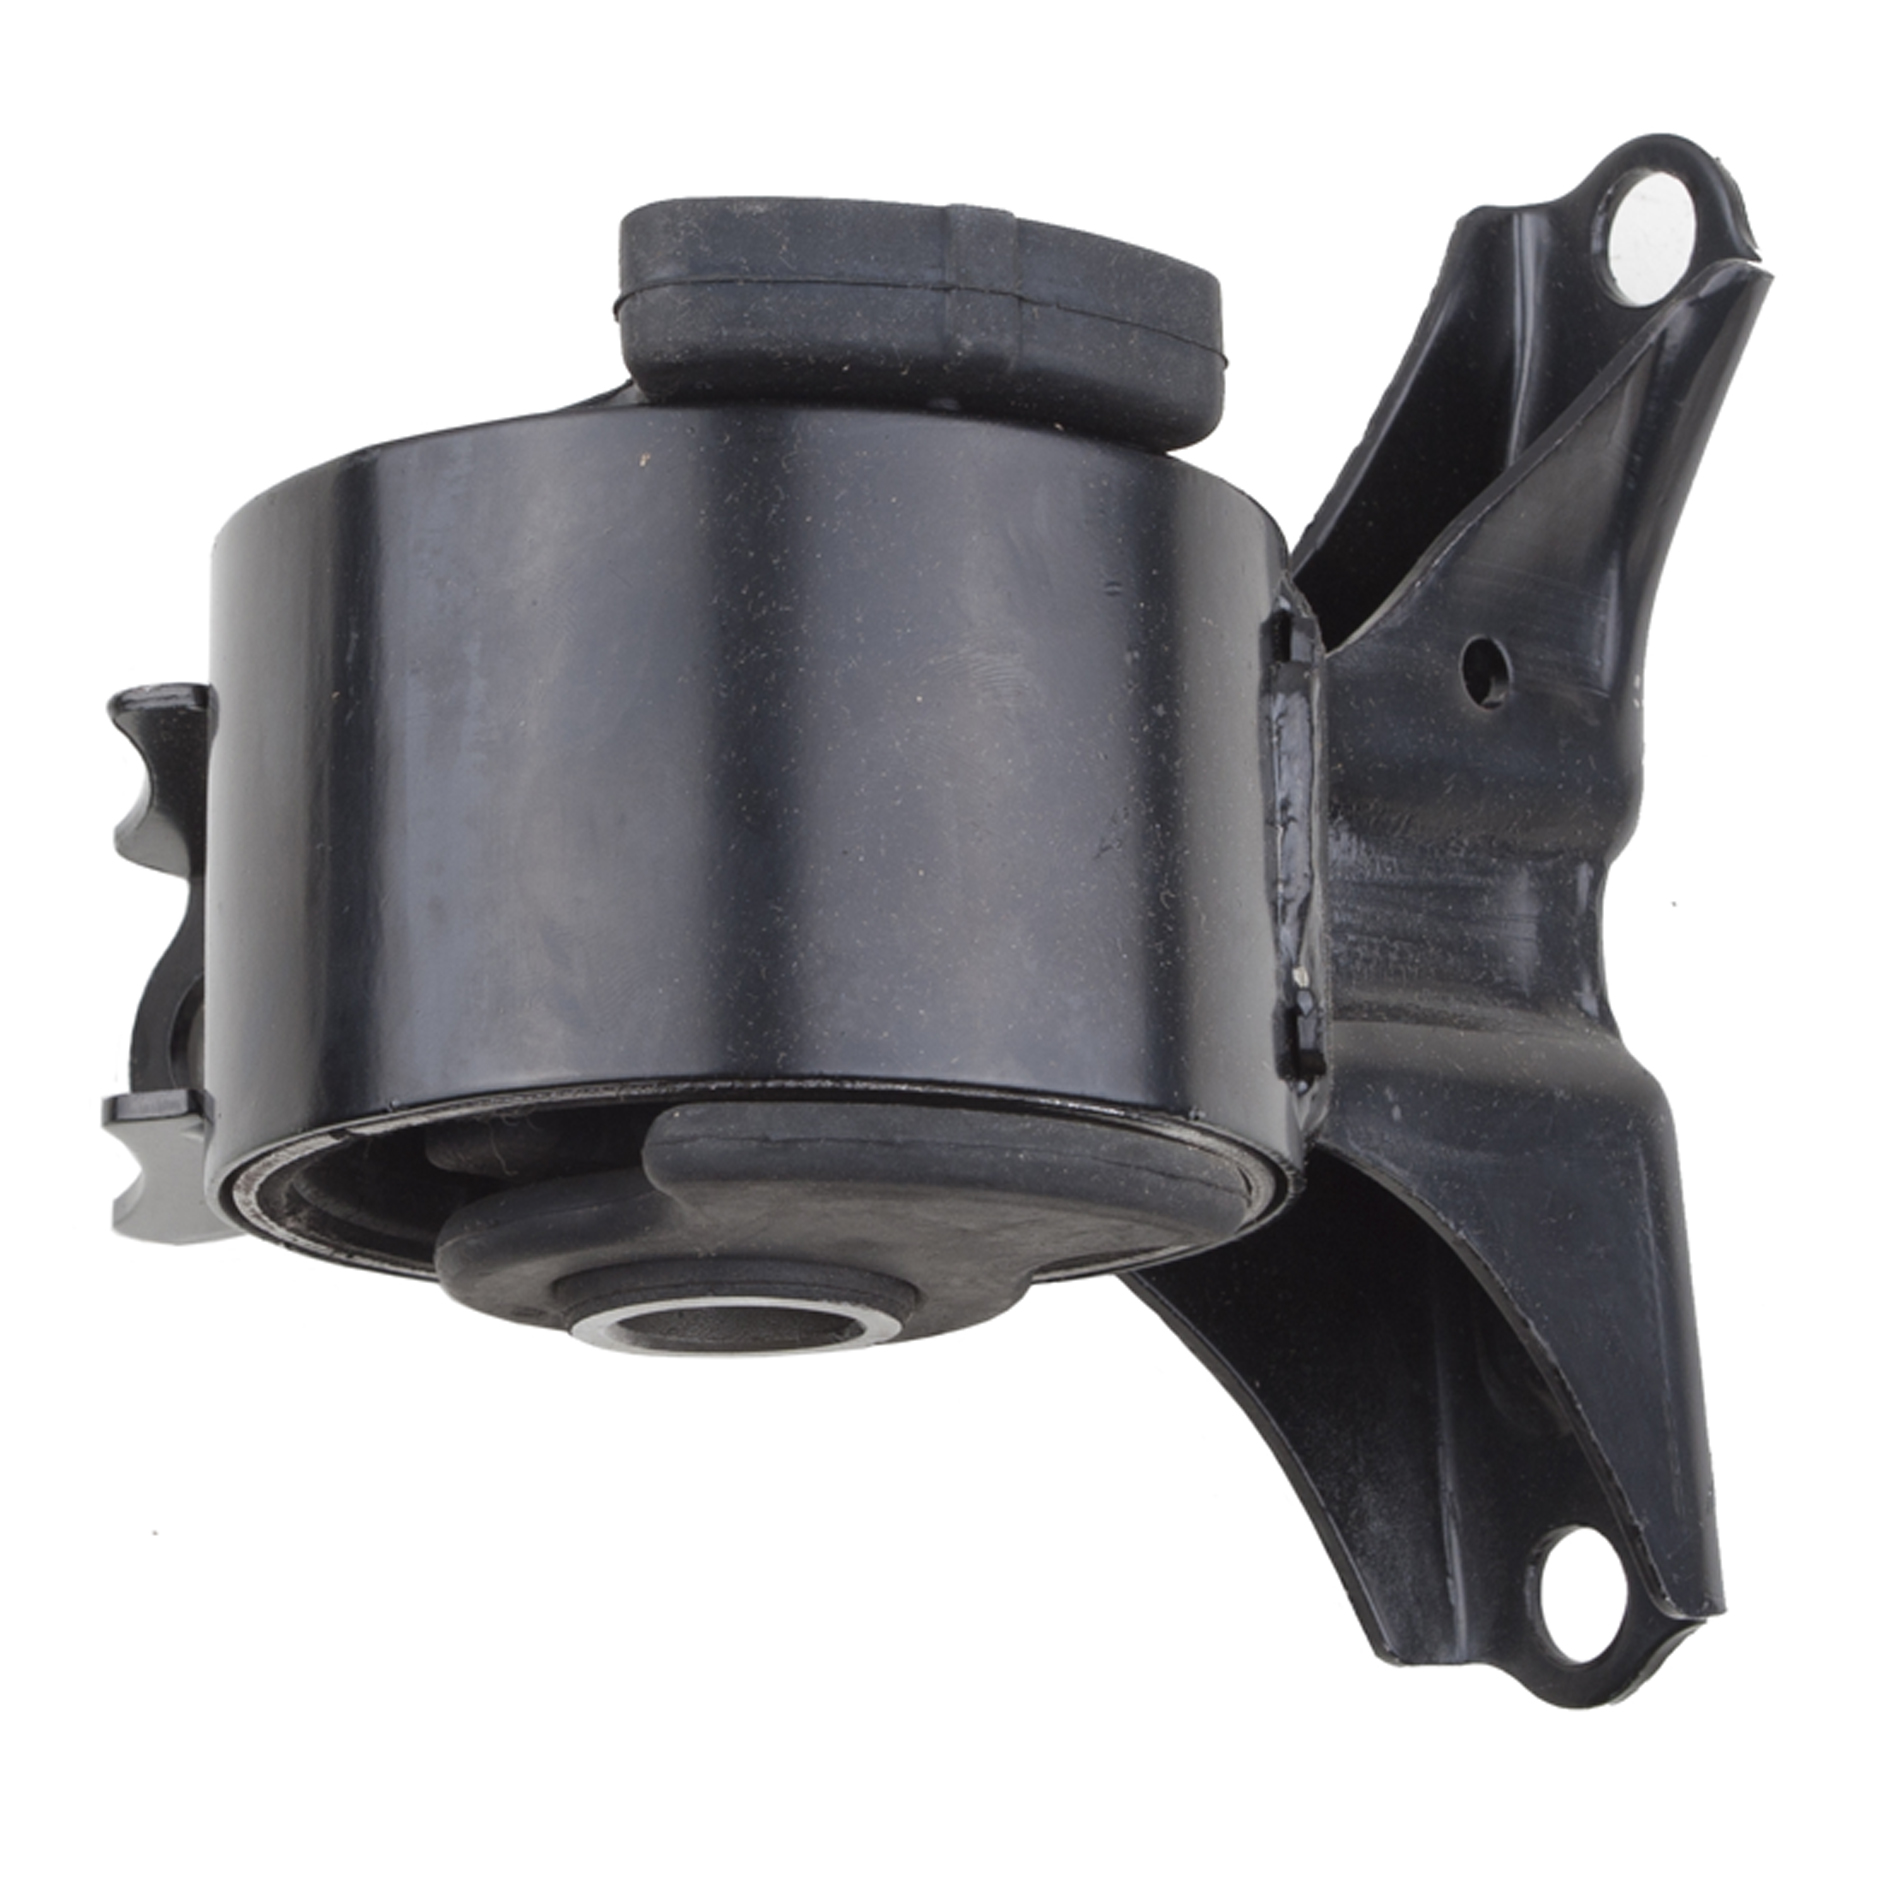 Engine Mount Right For Honda Pilot Acura MDX 3.5L 50820-S3V-A82